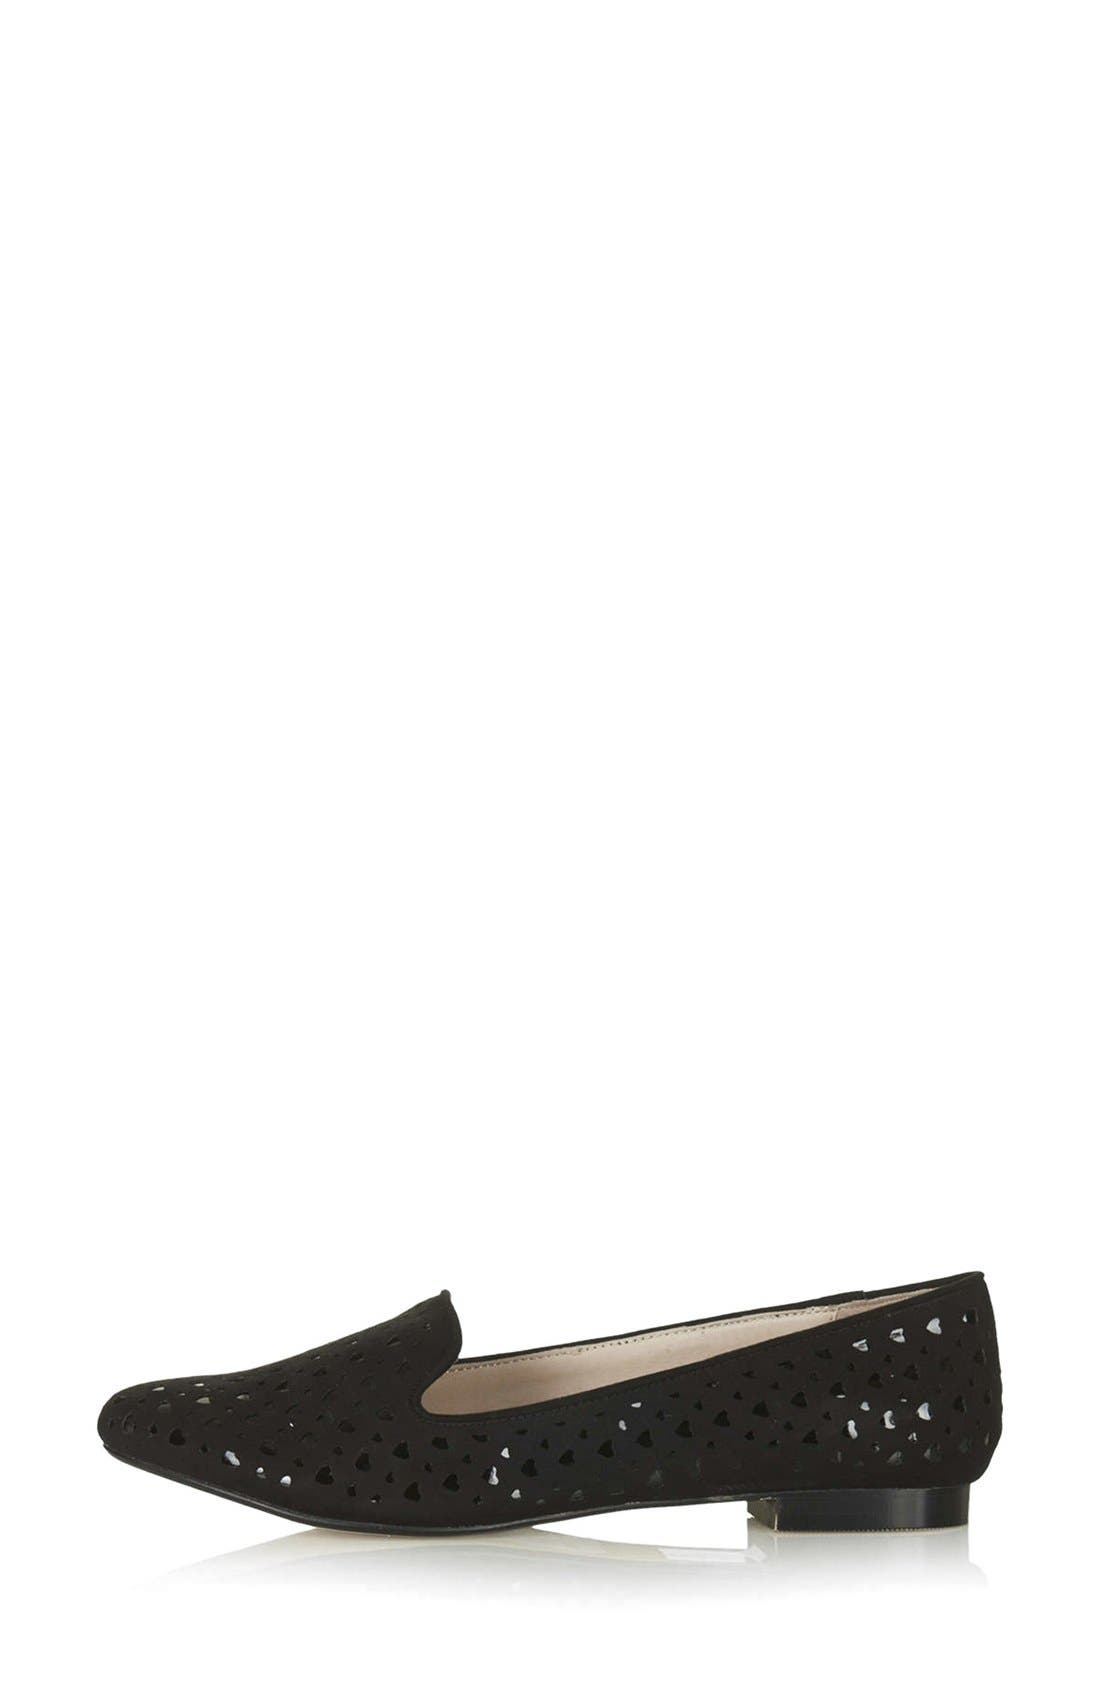 Main Image - Topshop 'Seek' Cutout Smoking Flat (Women)